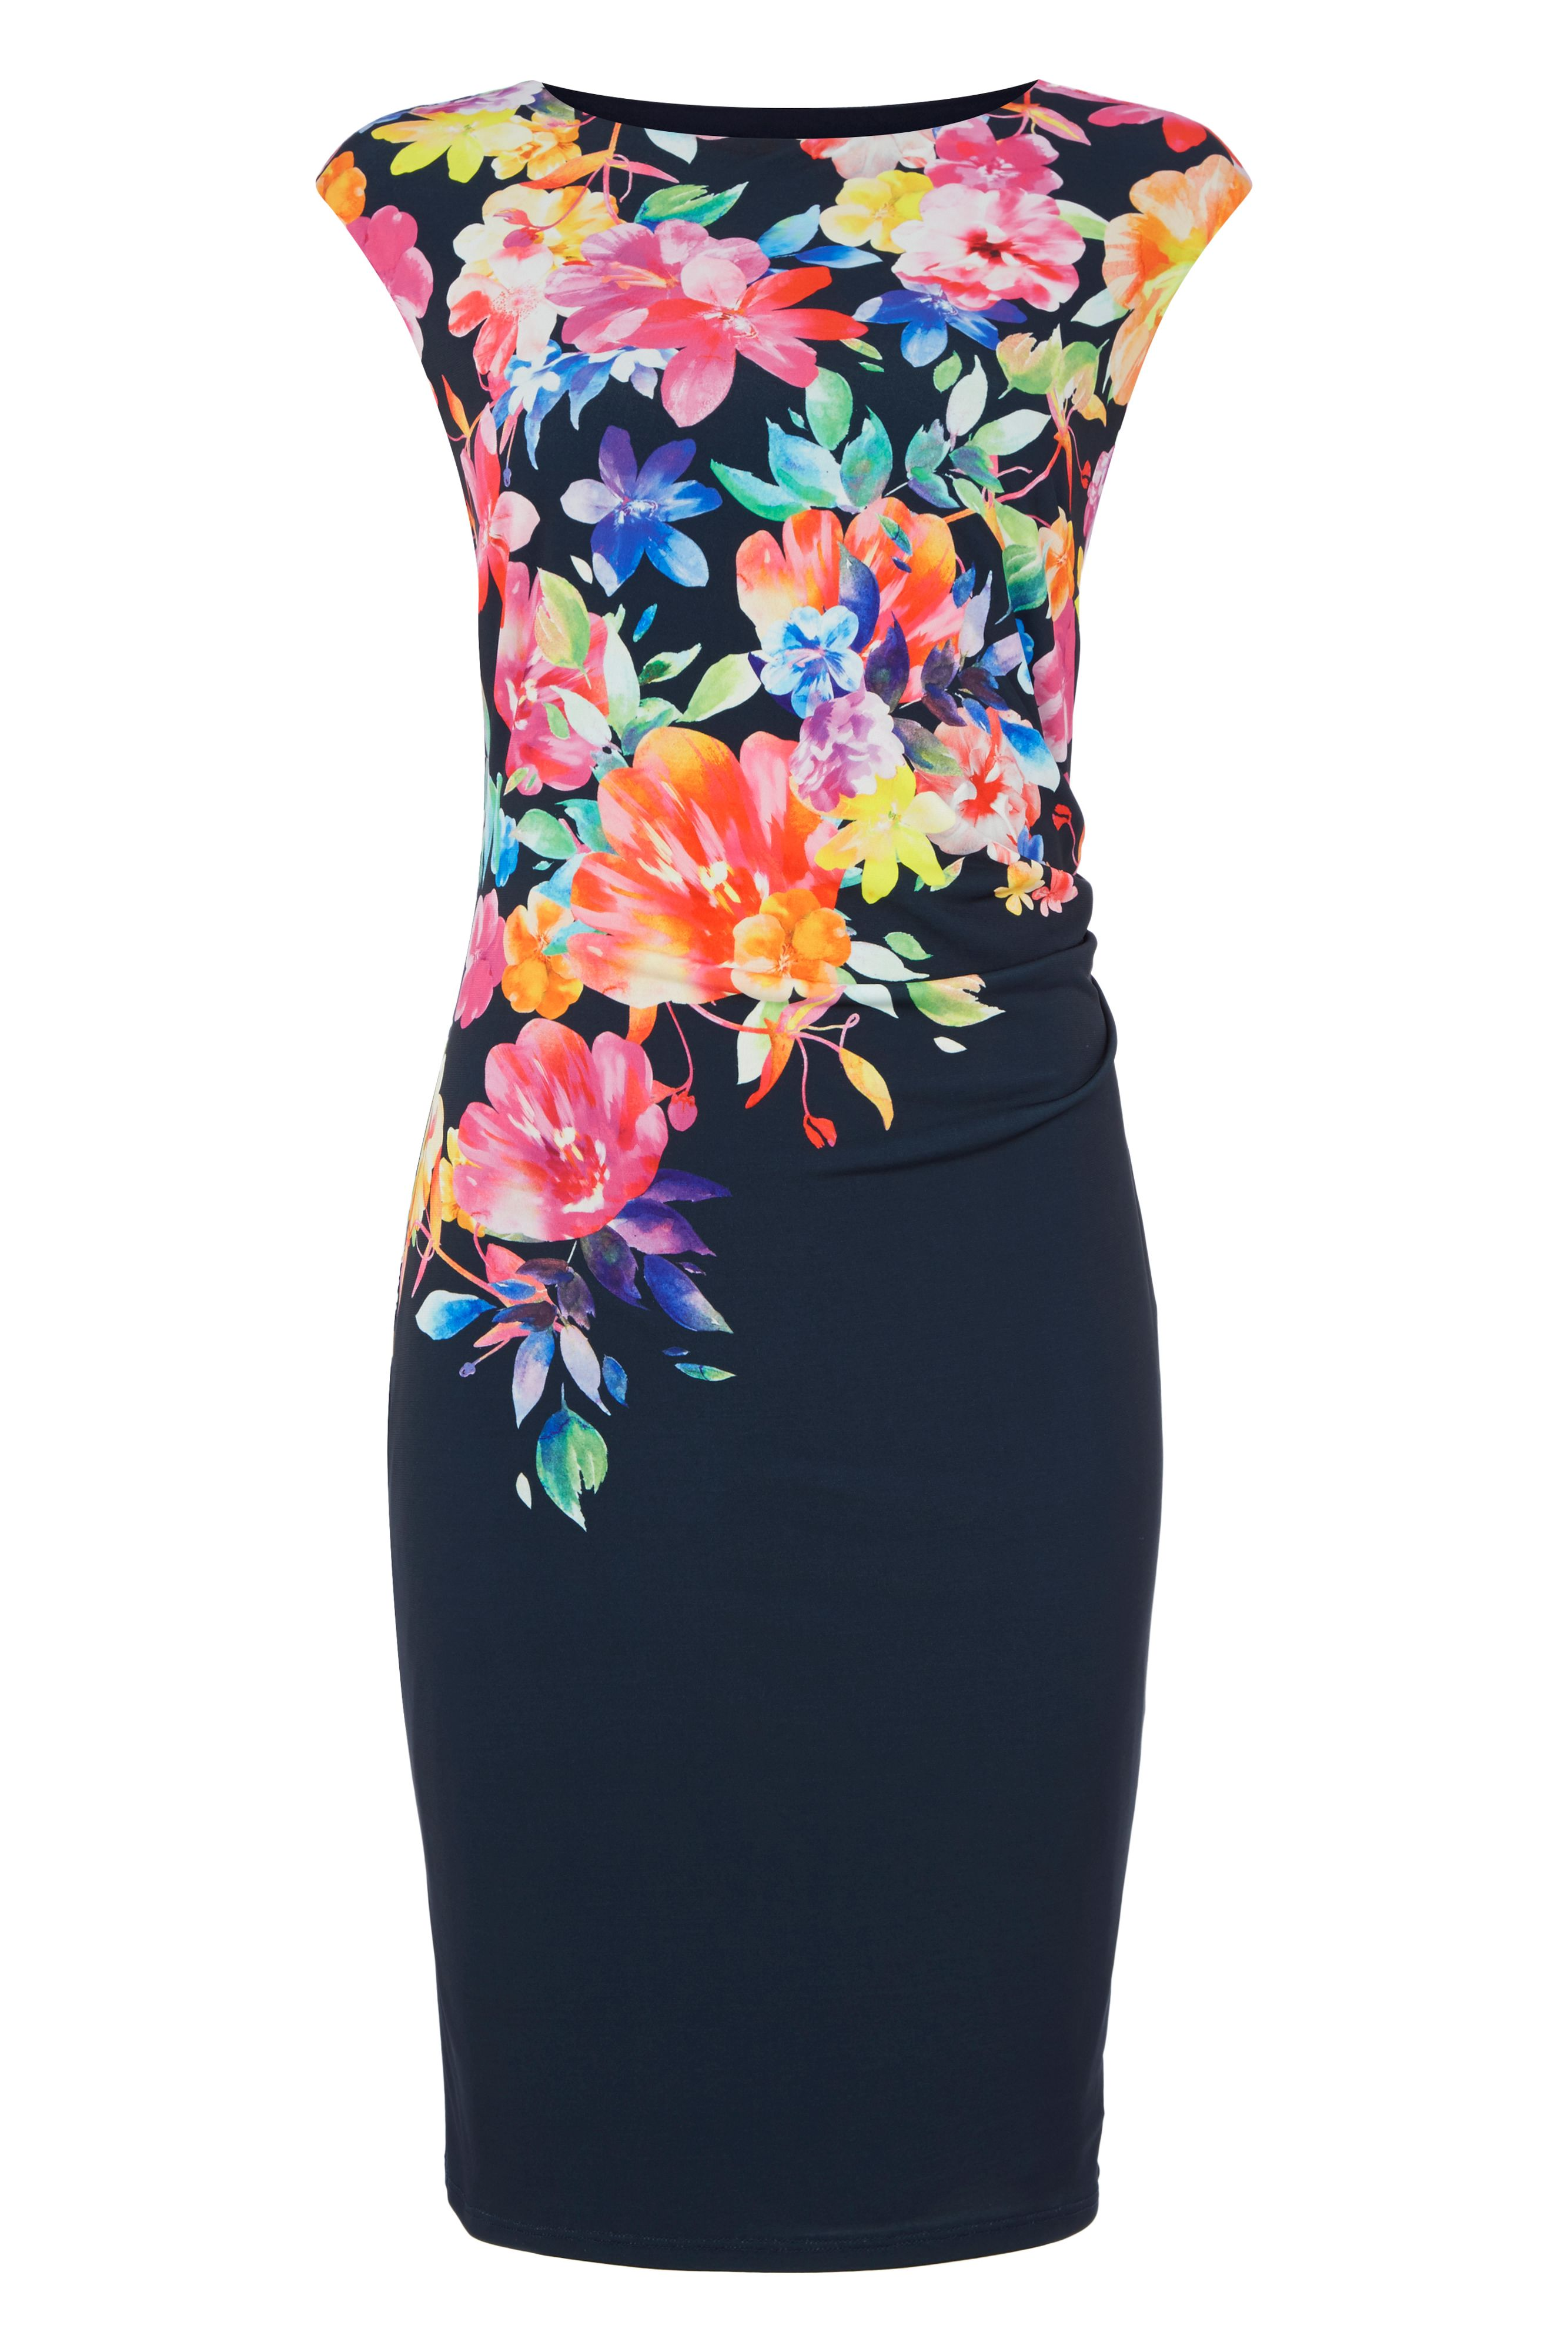 Roman Originals Bright Floral Placement Dress, Blue